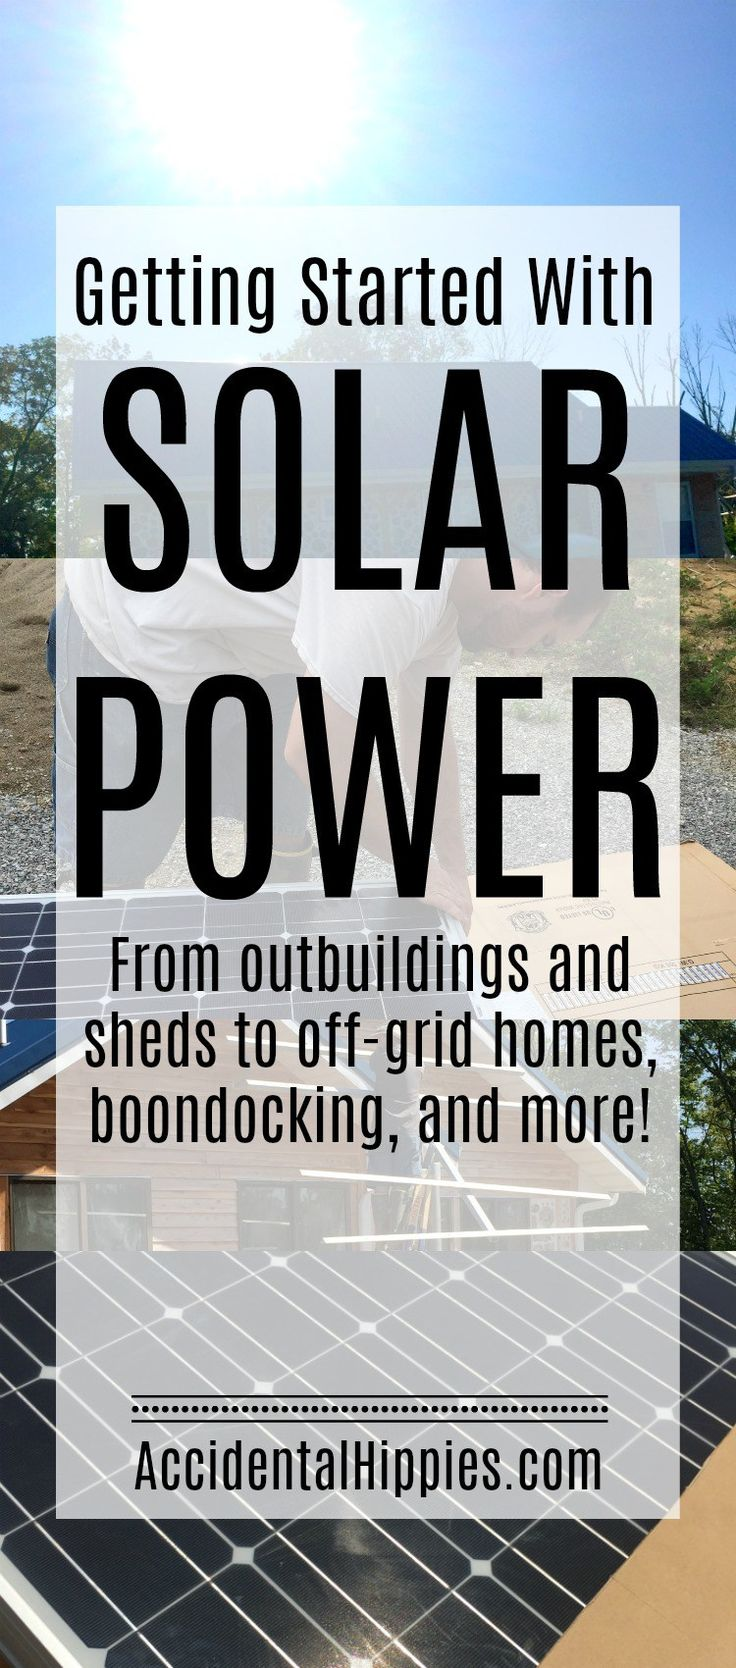 75052 Best Self Sufficiency Images On Pinterest